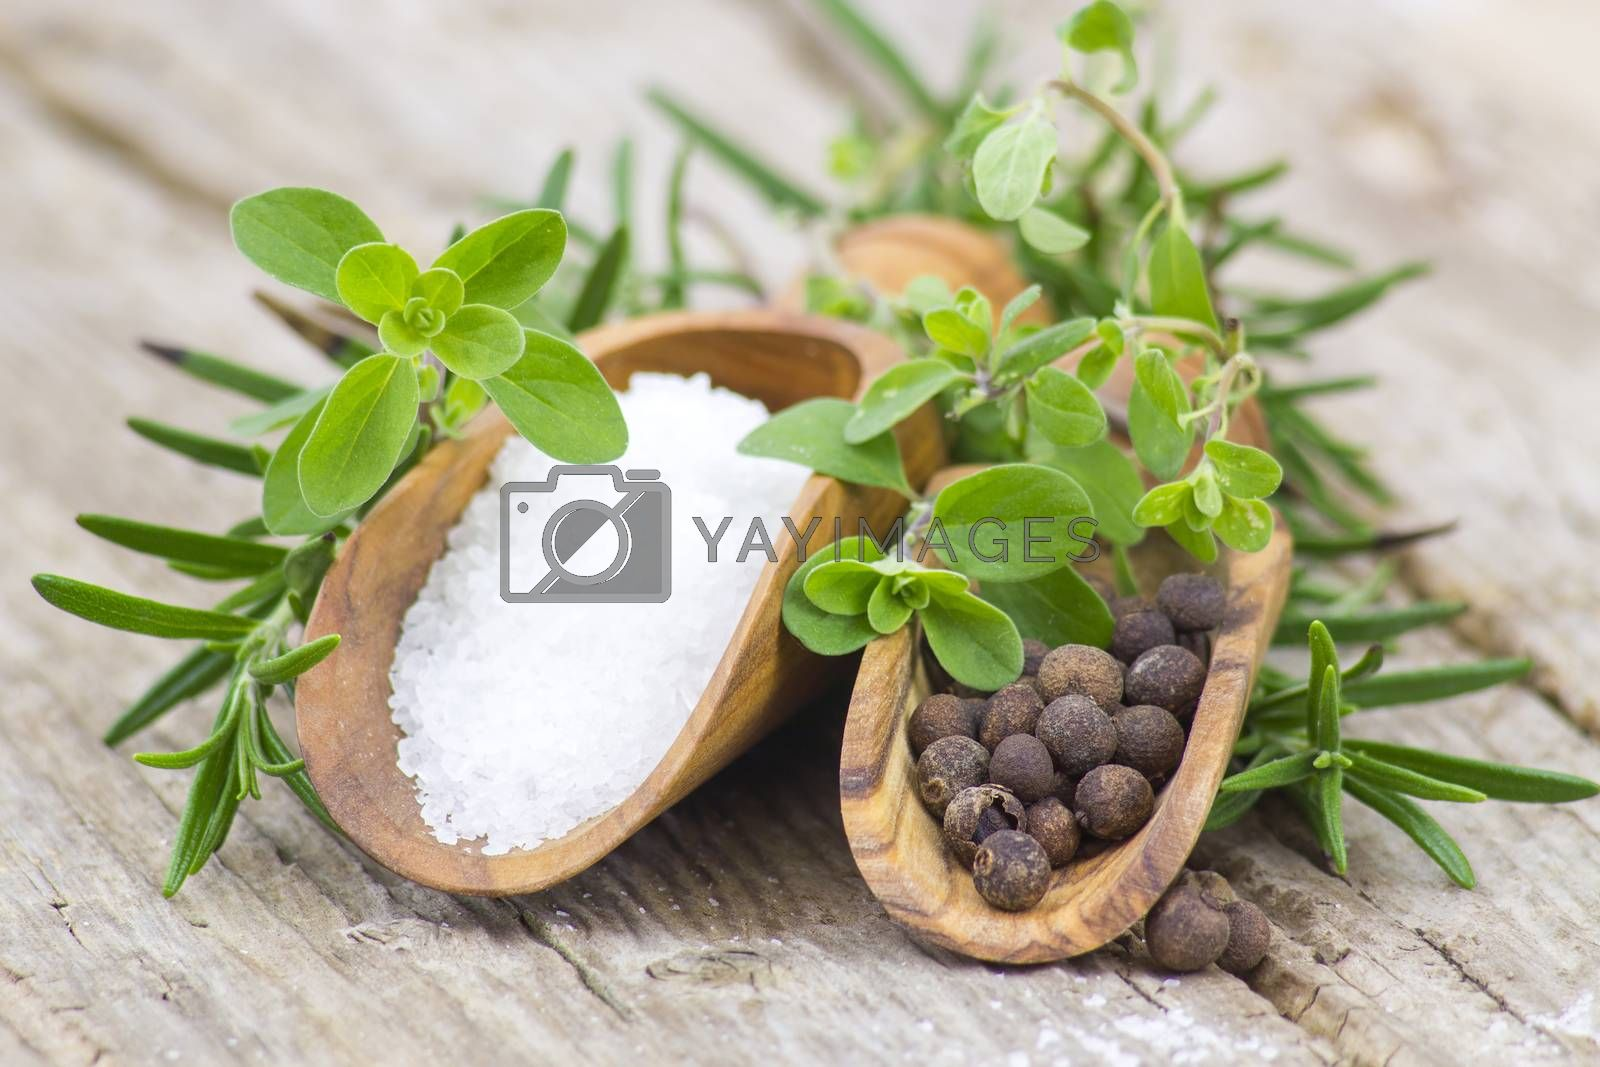 Royalty free image of fresh herbs, salt and pepper by miradrozdowski